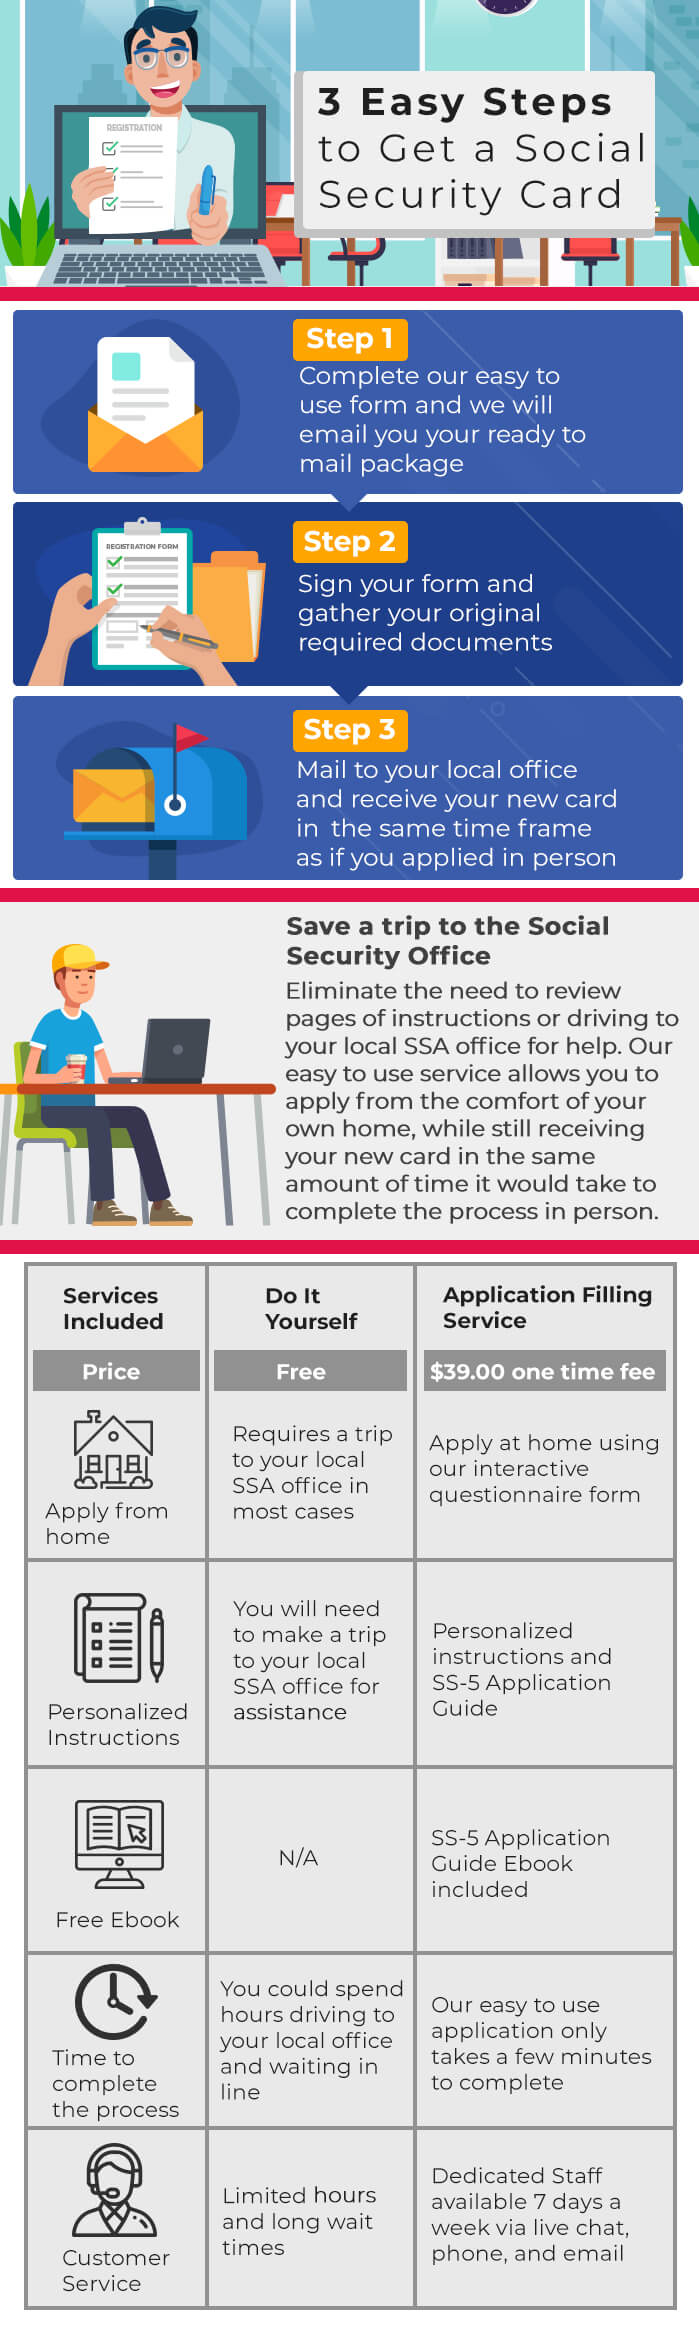 Social Security Card Application Online - New and